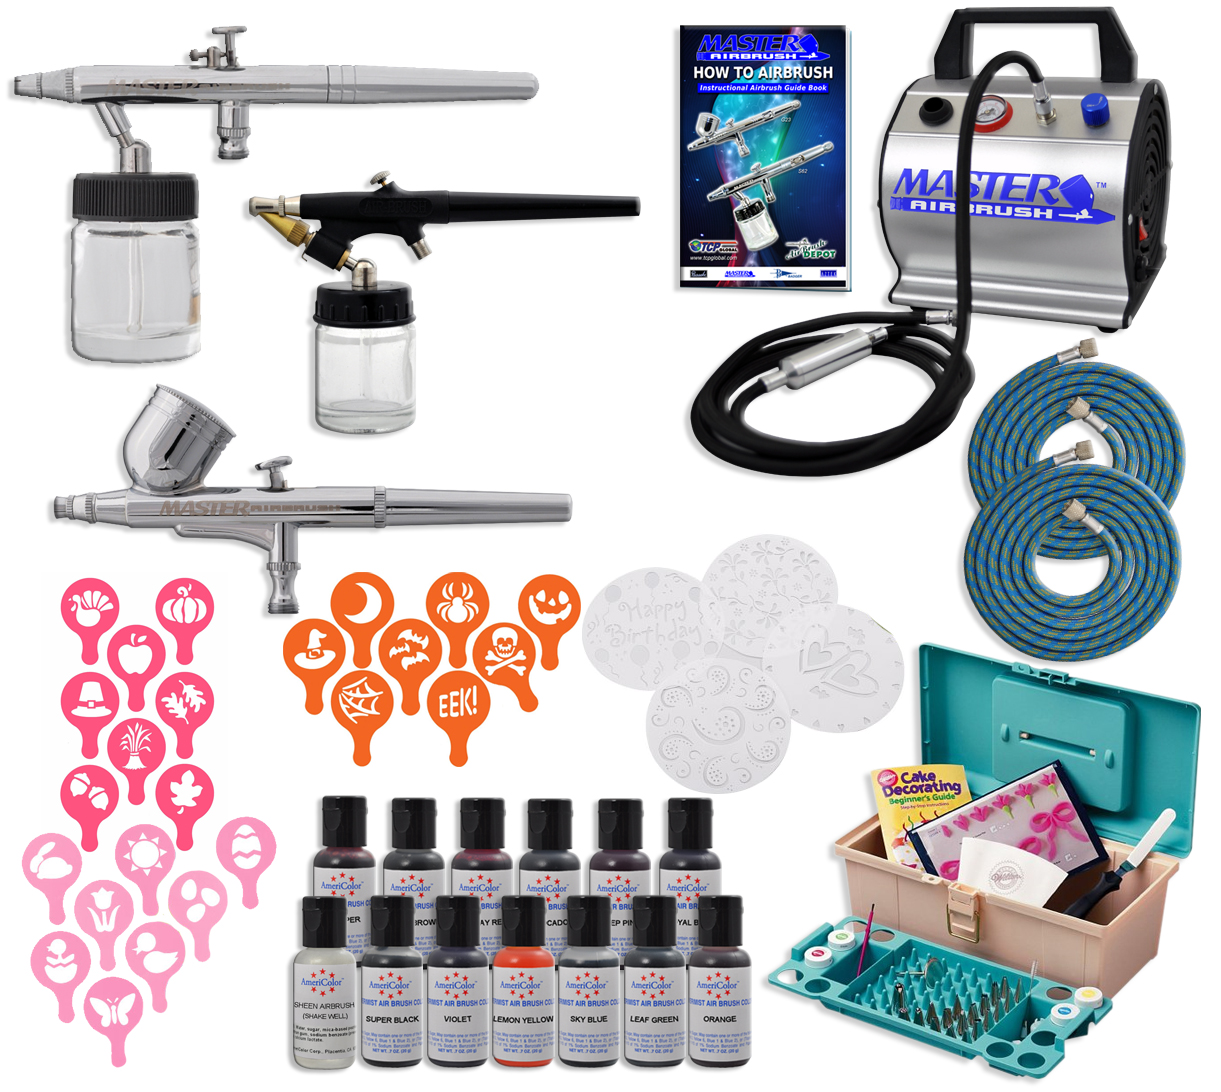 Master Airbrush Cake Decorating Set 13 AmeriMist Colors 50 ...